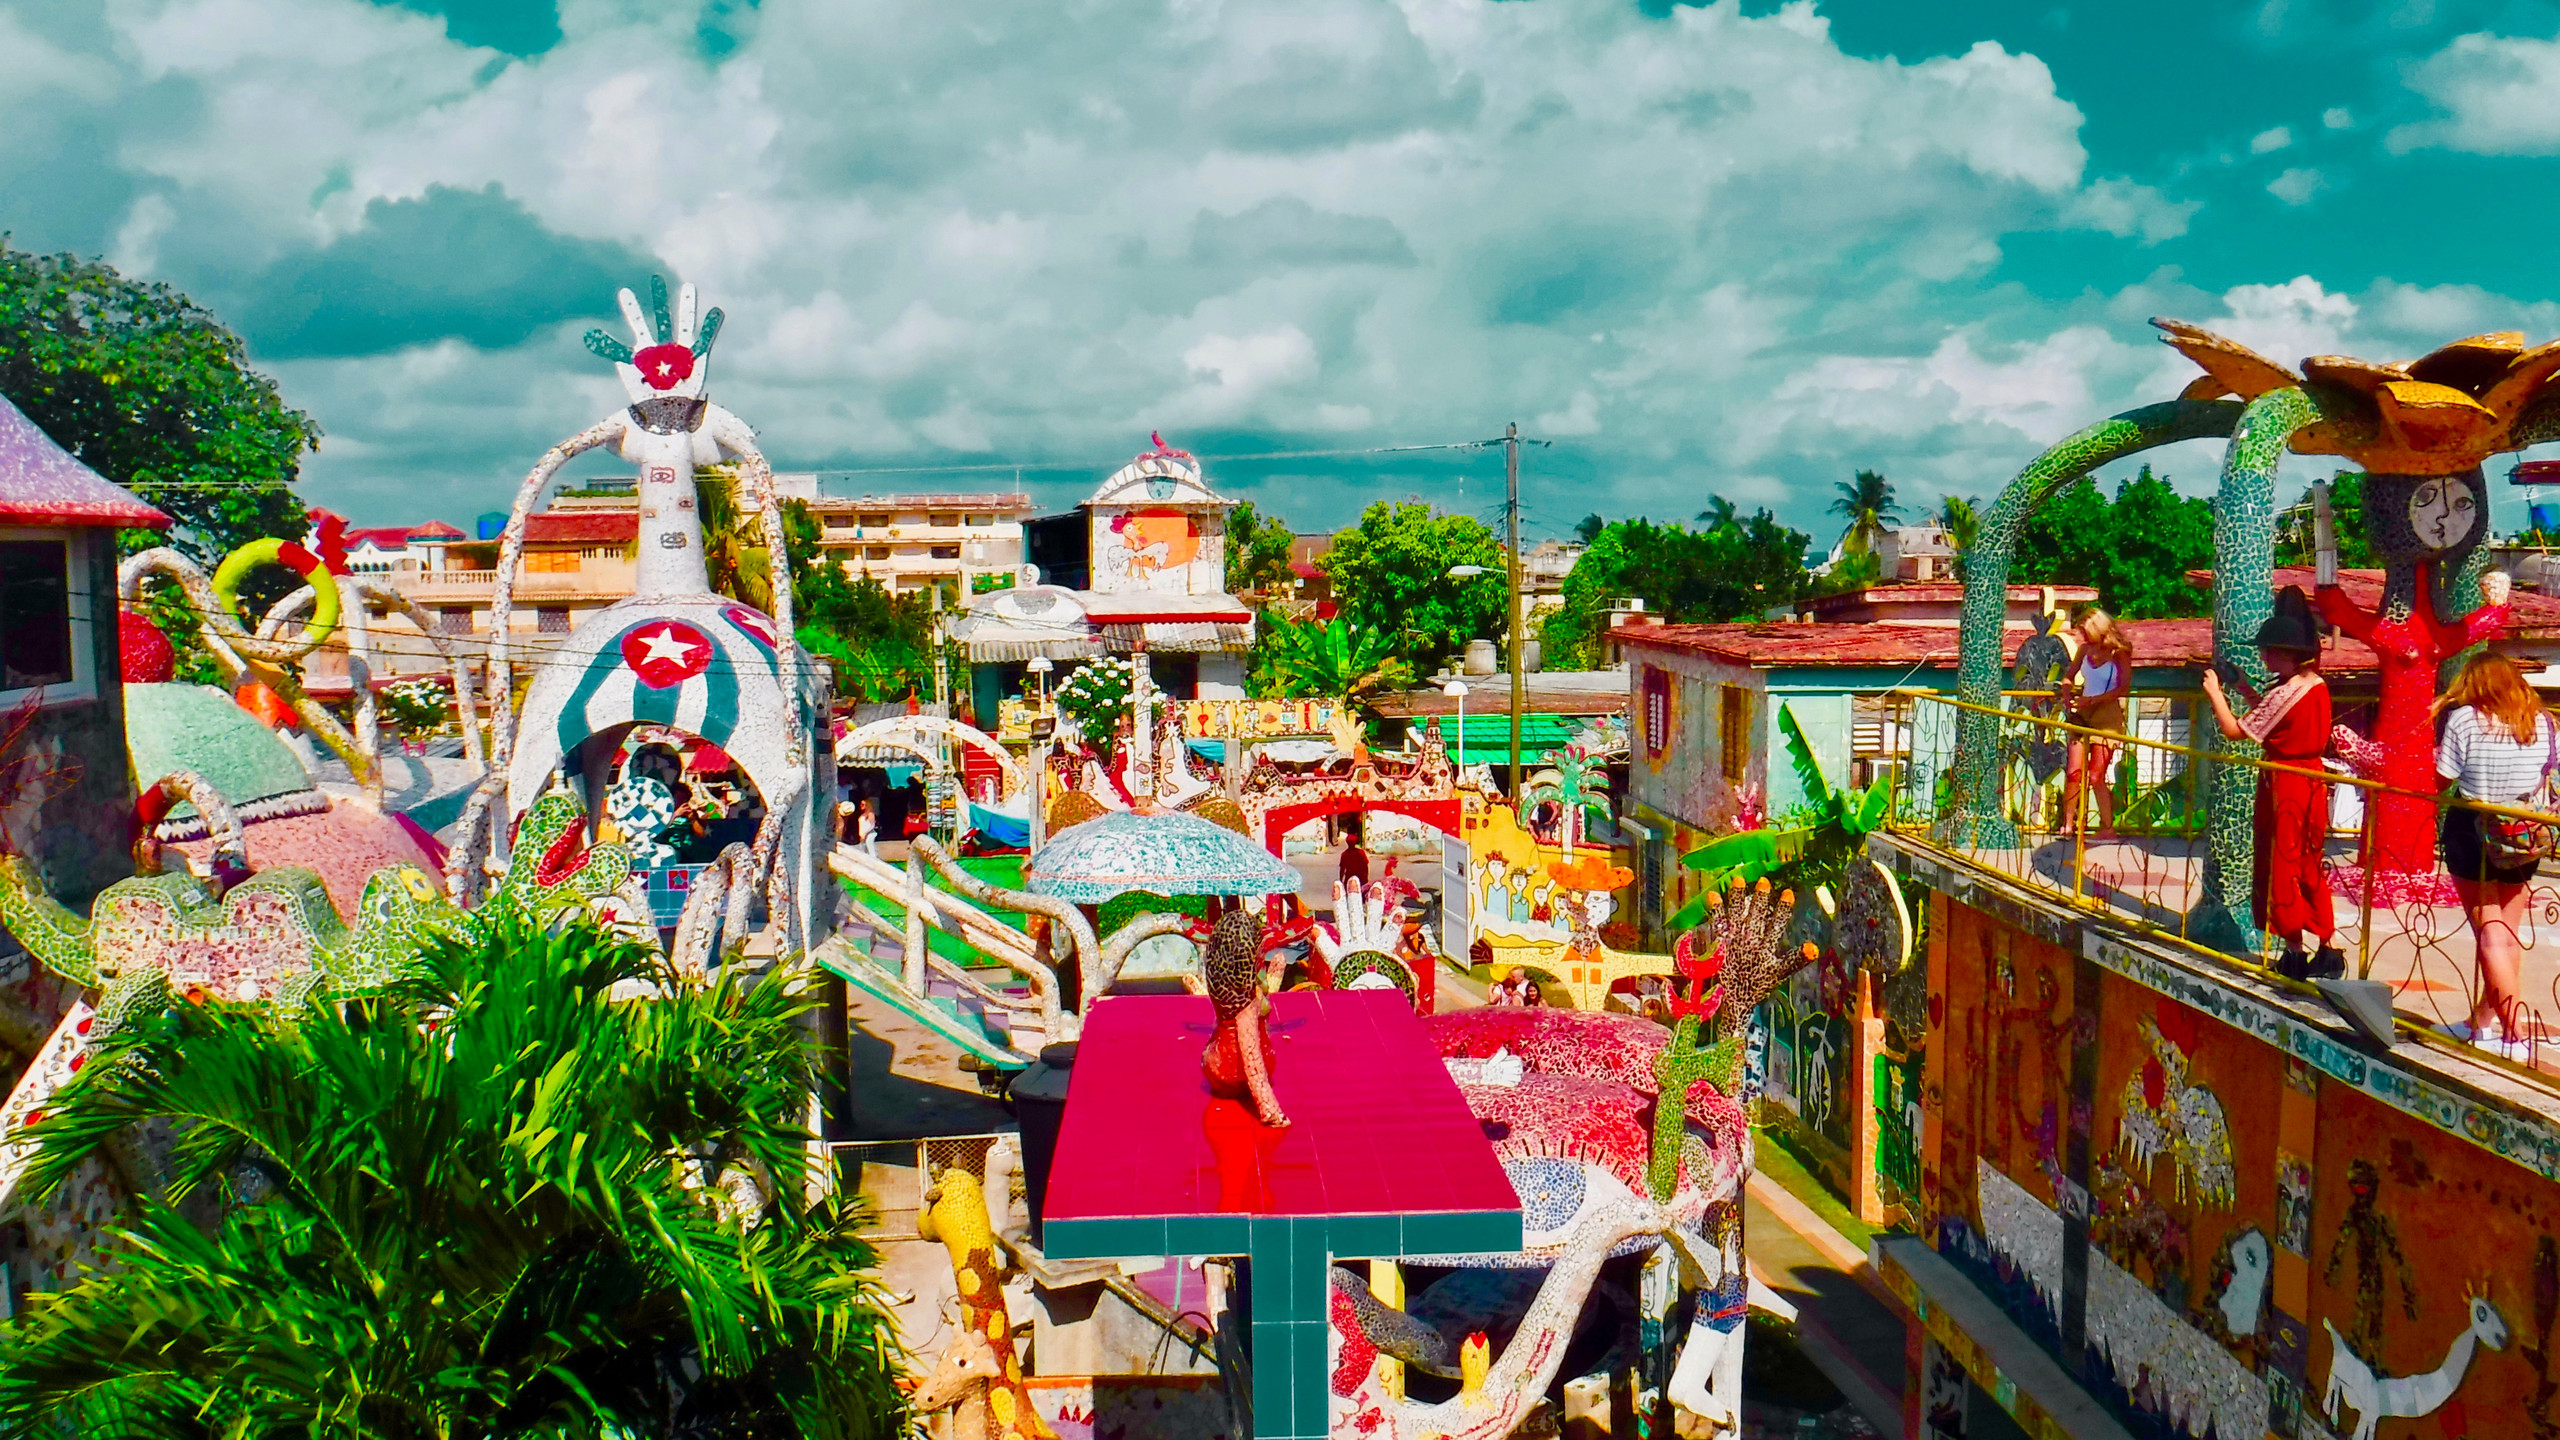 Colorful tiled rooftops at Fusterlandia.